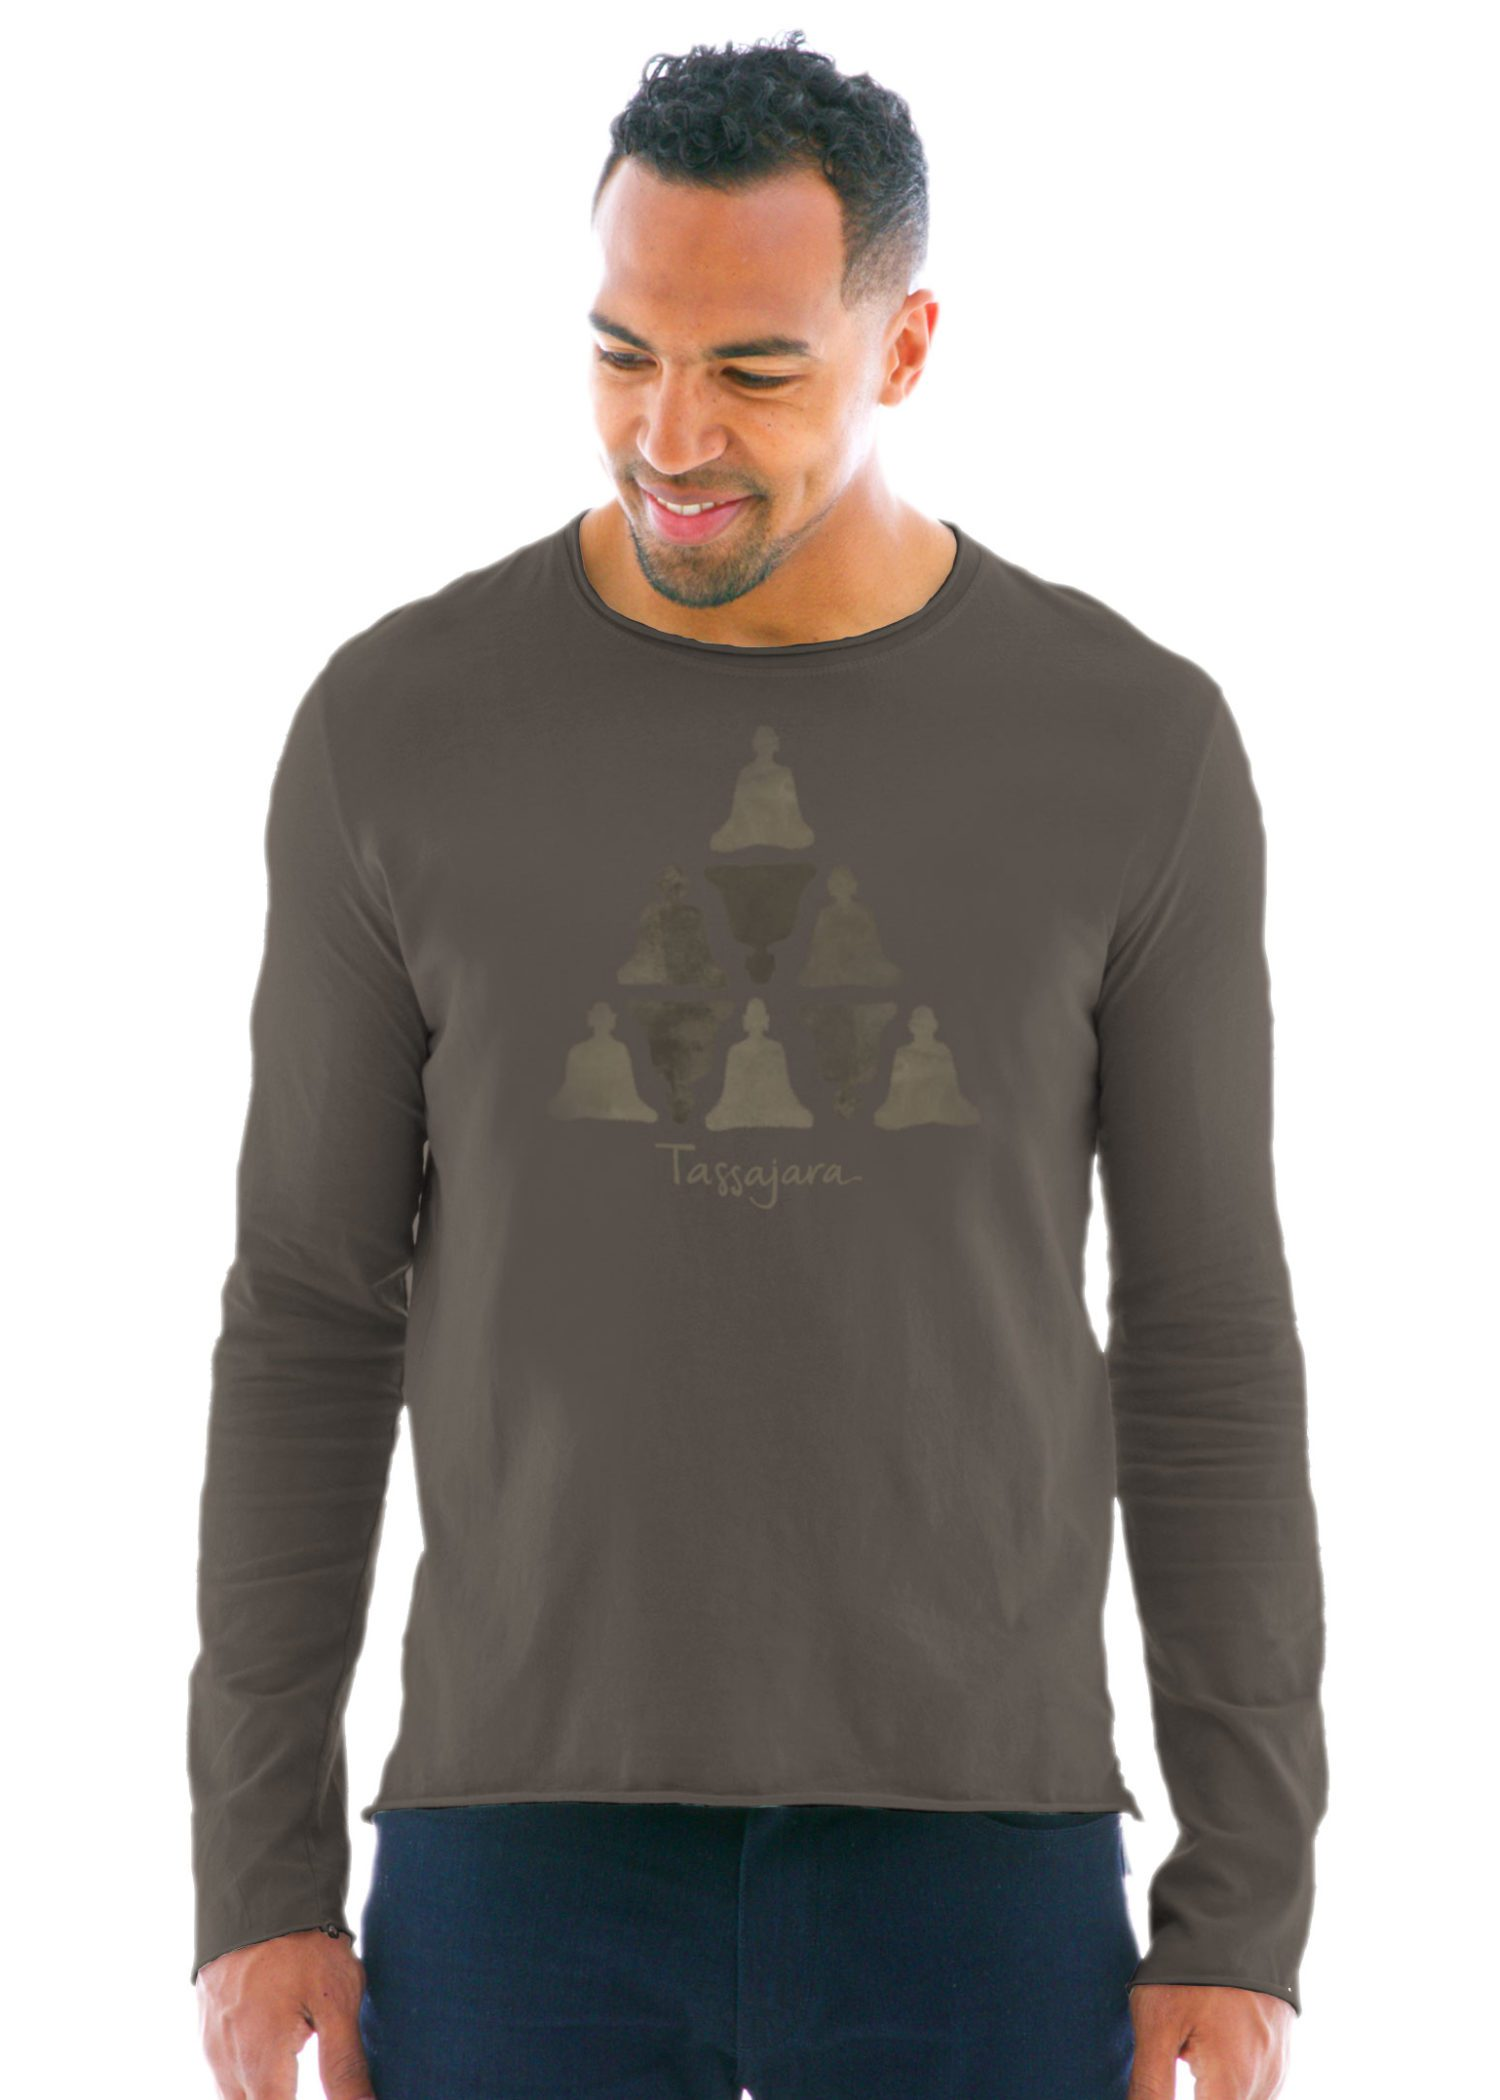 Men's Raw Edge Long Sleeve Crew T-Shirt